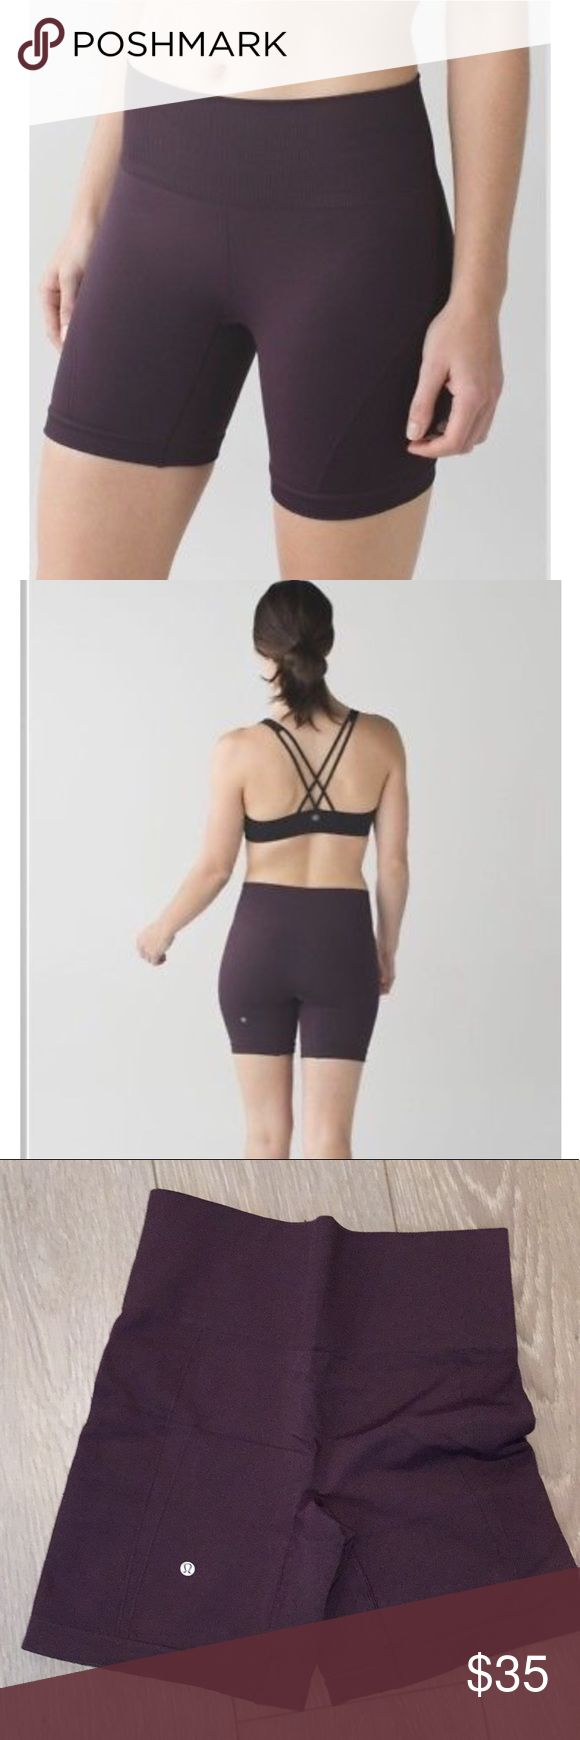 "Lululemon Sculpt Short Color: Black Cherry Lightweight, sweat-wicking The medium-rise waistband helps keep us covered whether we're folding forward or bending over our handle bars, while a gusset-free design moves bulky seams away from our lady bits to help keep chafing at bay.  Key features lightweight, sweat-wicking fabric helps keep you feeling cool and dry seamless construction reduces bulk  comfortable waistband   fit: tight rise: medium inseam: 6"" leg opening: 17 1/2"" lululemon…"